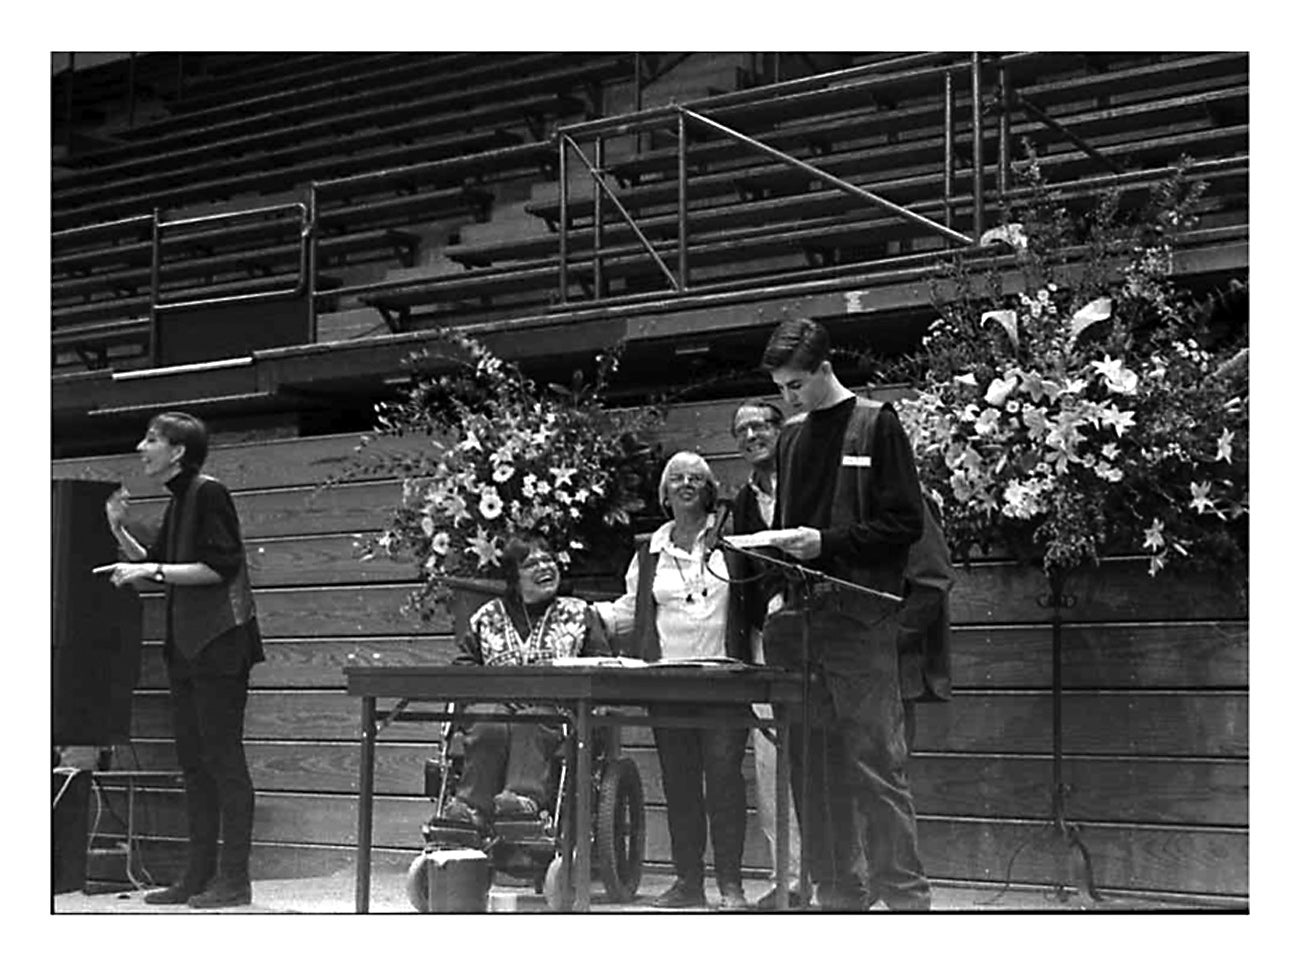 Lee Roberts spoke at the UC Berkeley memorial service held after Ed died in March 1995. Judy Heumann, Zona Roberts and Ron Roberts were watching.